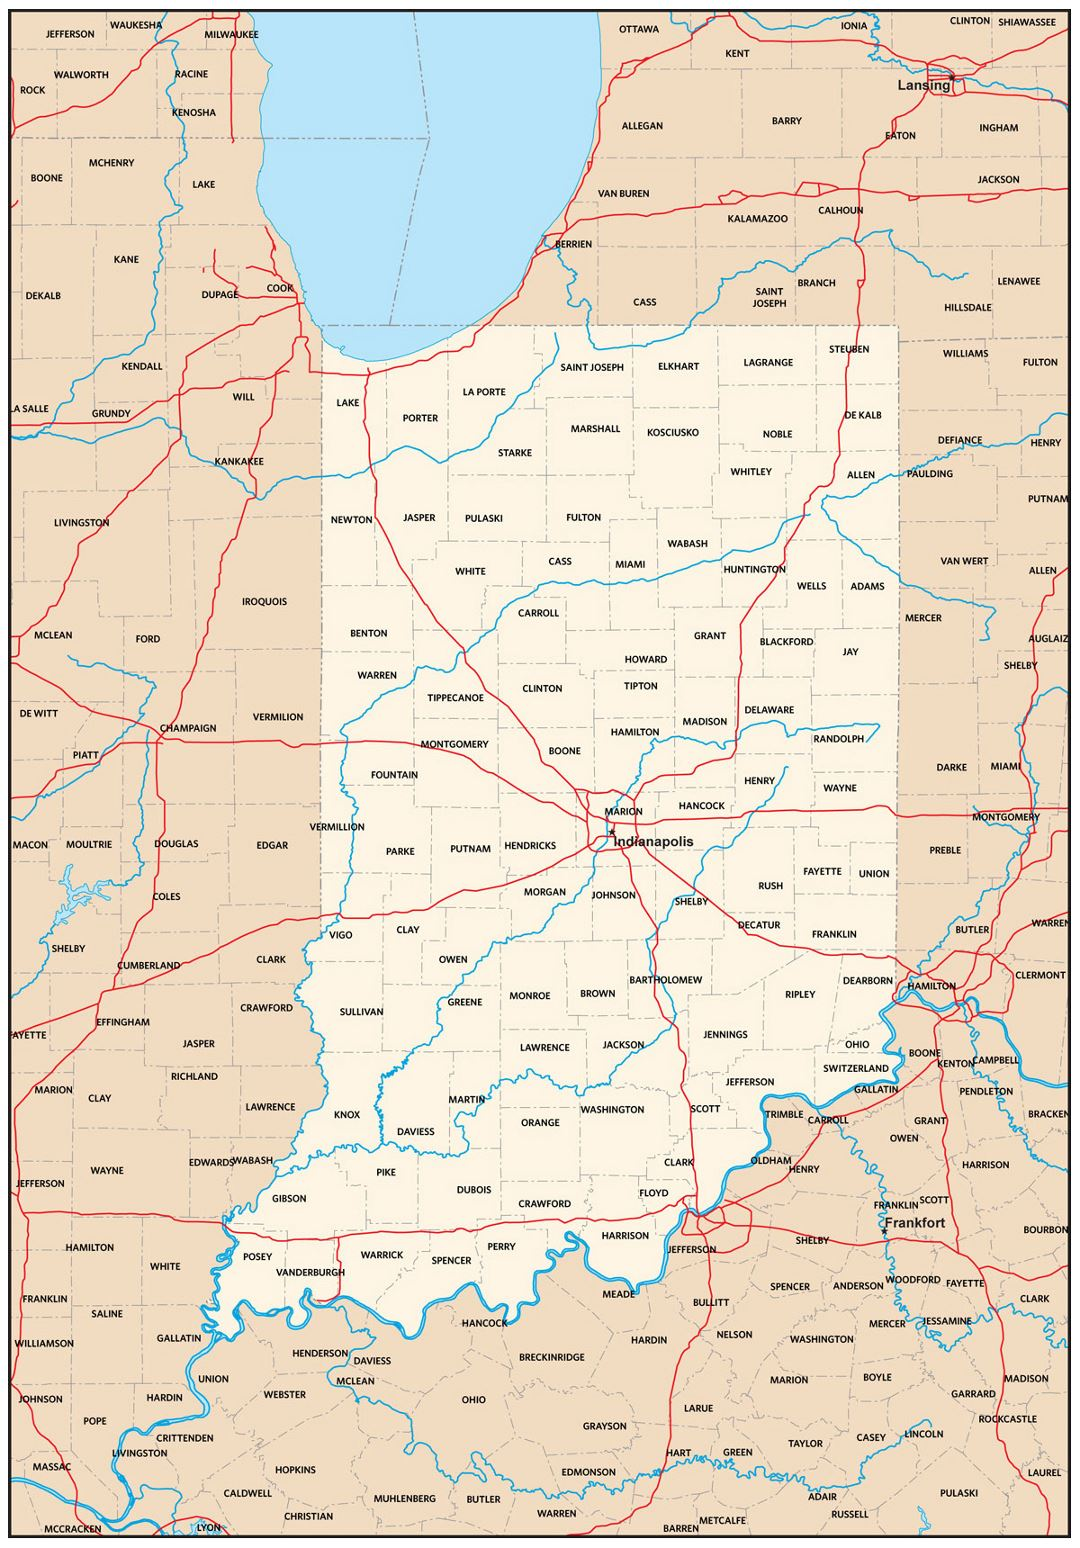 Detailed administrative map of Indiana